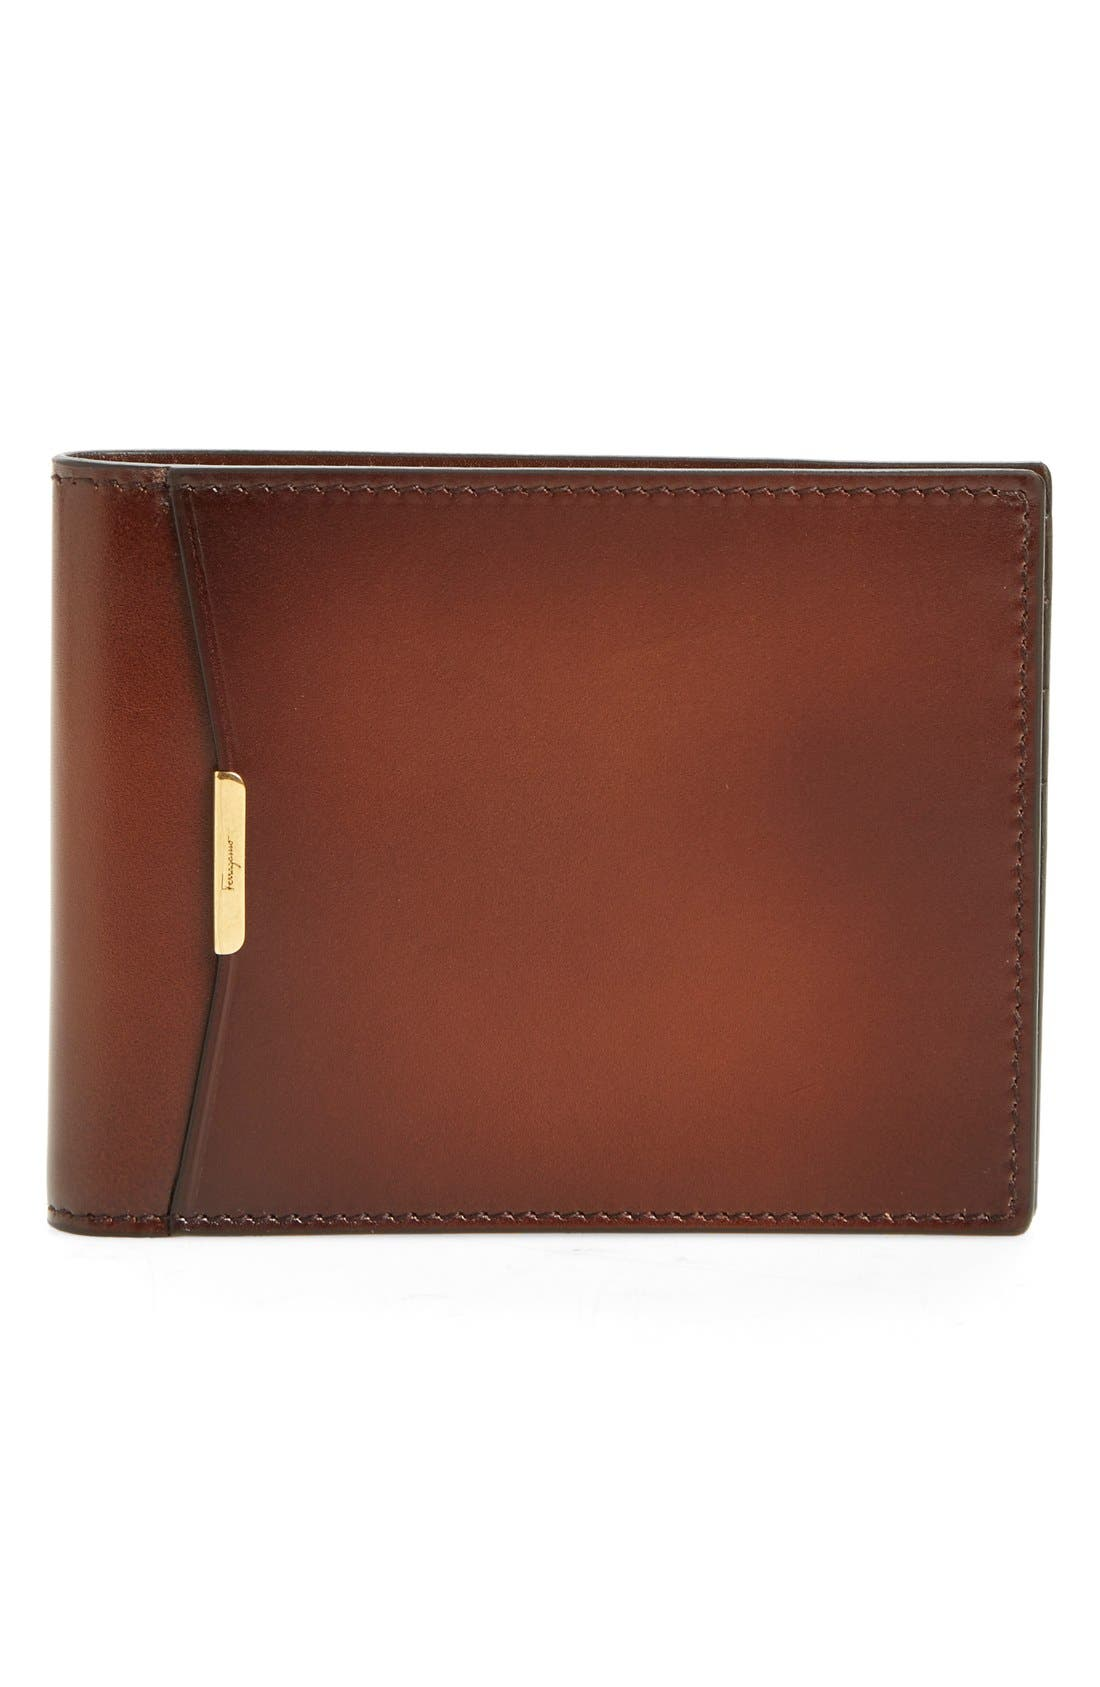 Alternate Image 1 Selected - Salvatore Ferragamo Bifold Leather Wallet